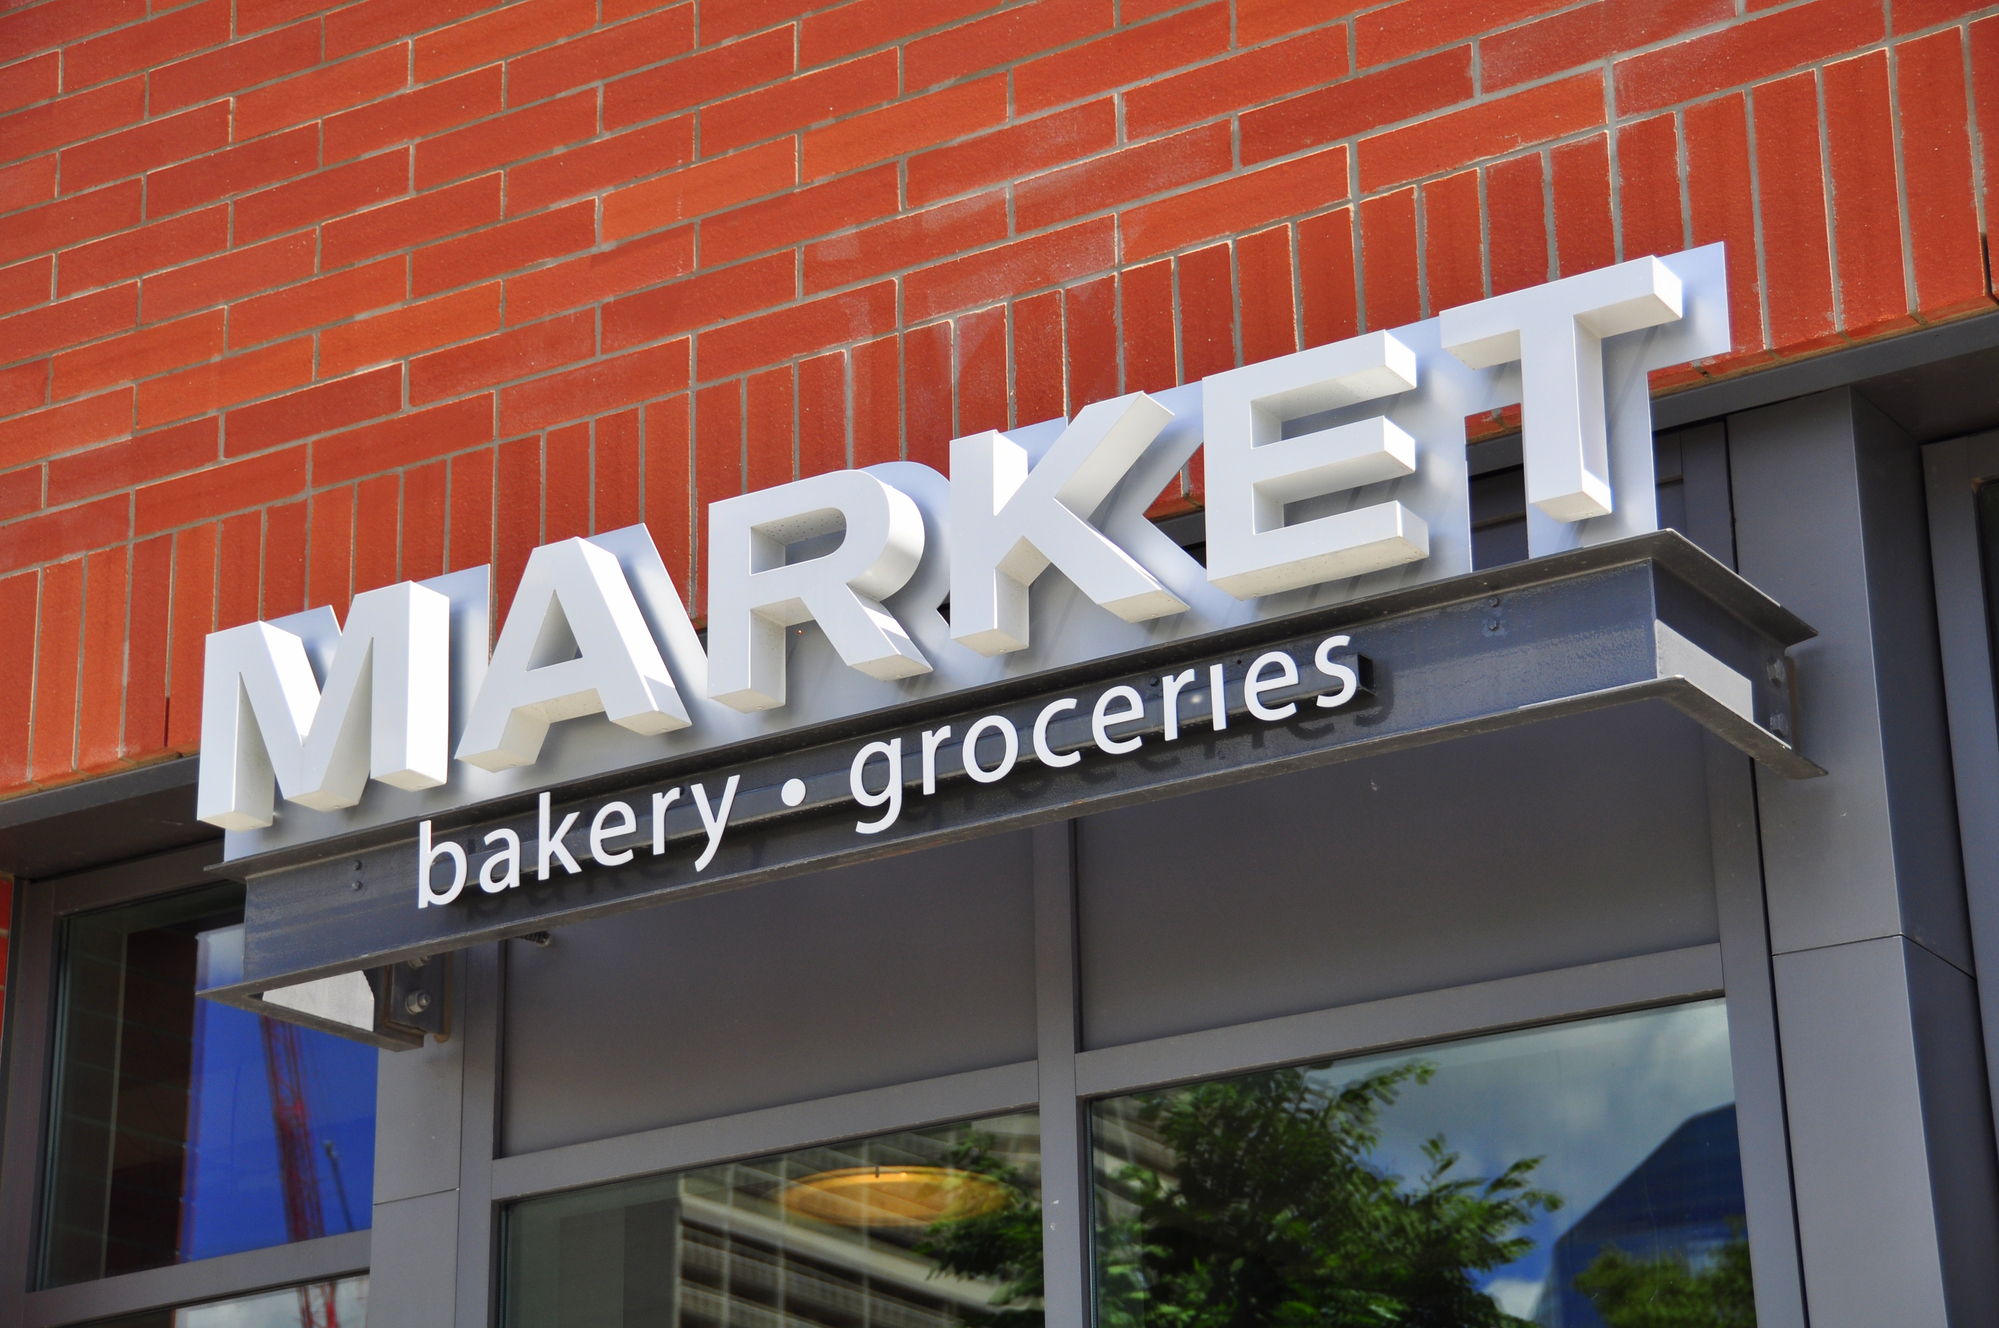 Market Bakery and Groceries in Metal Channel Letters Attached To Brick Building